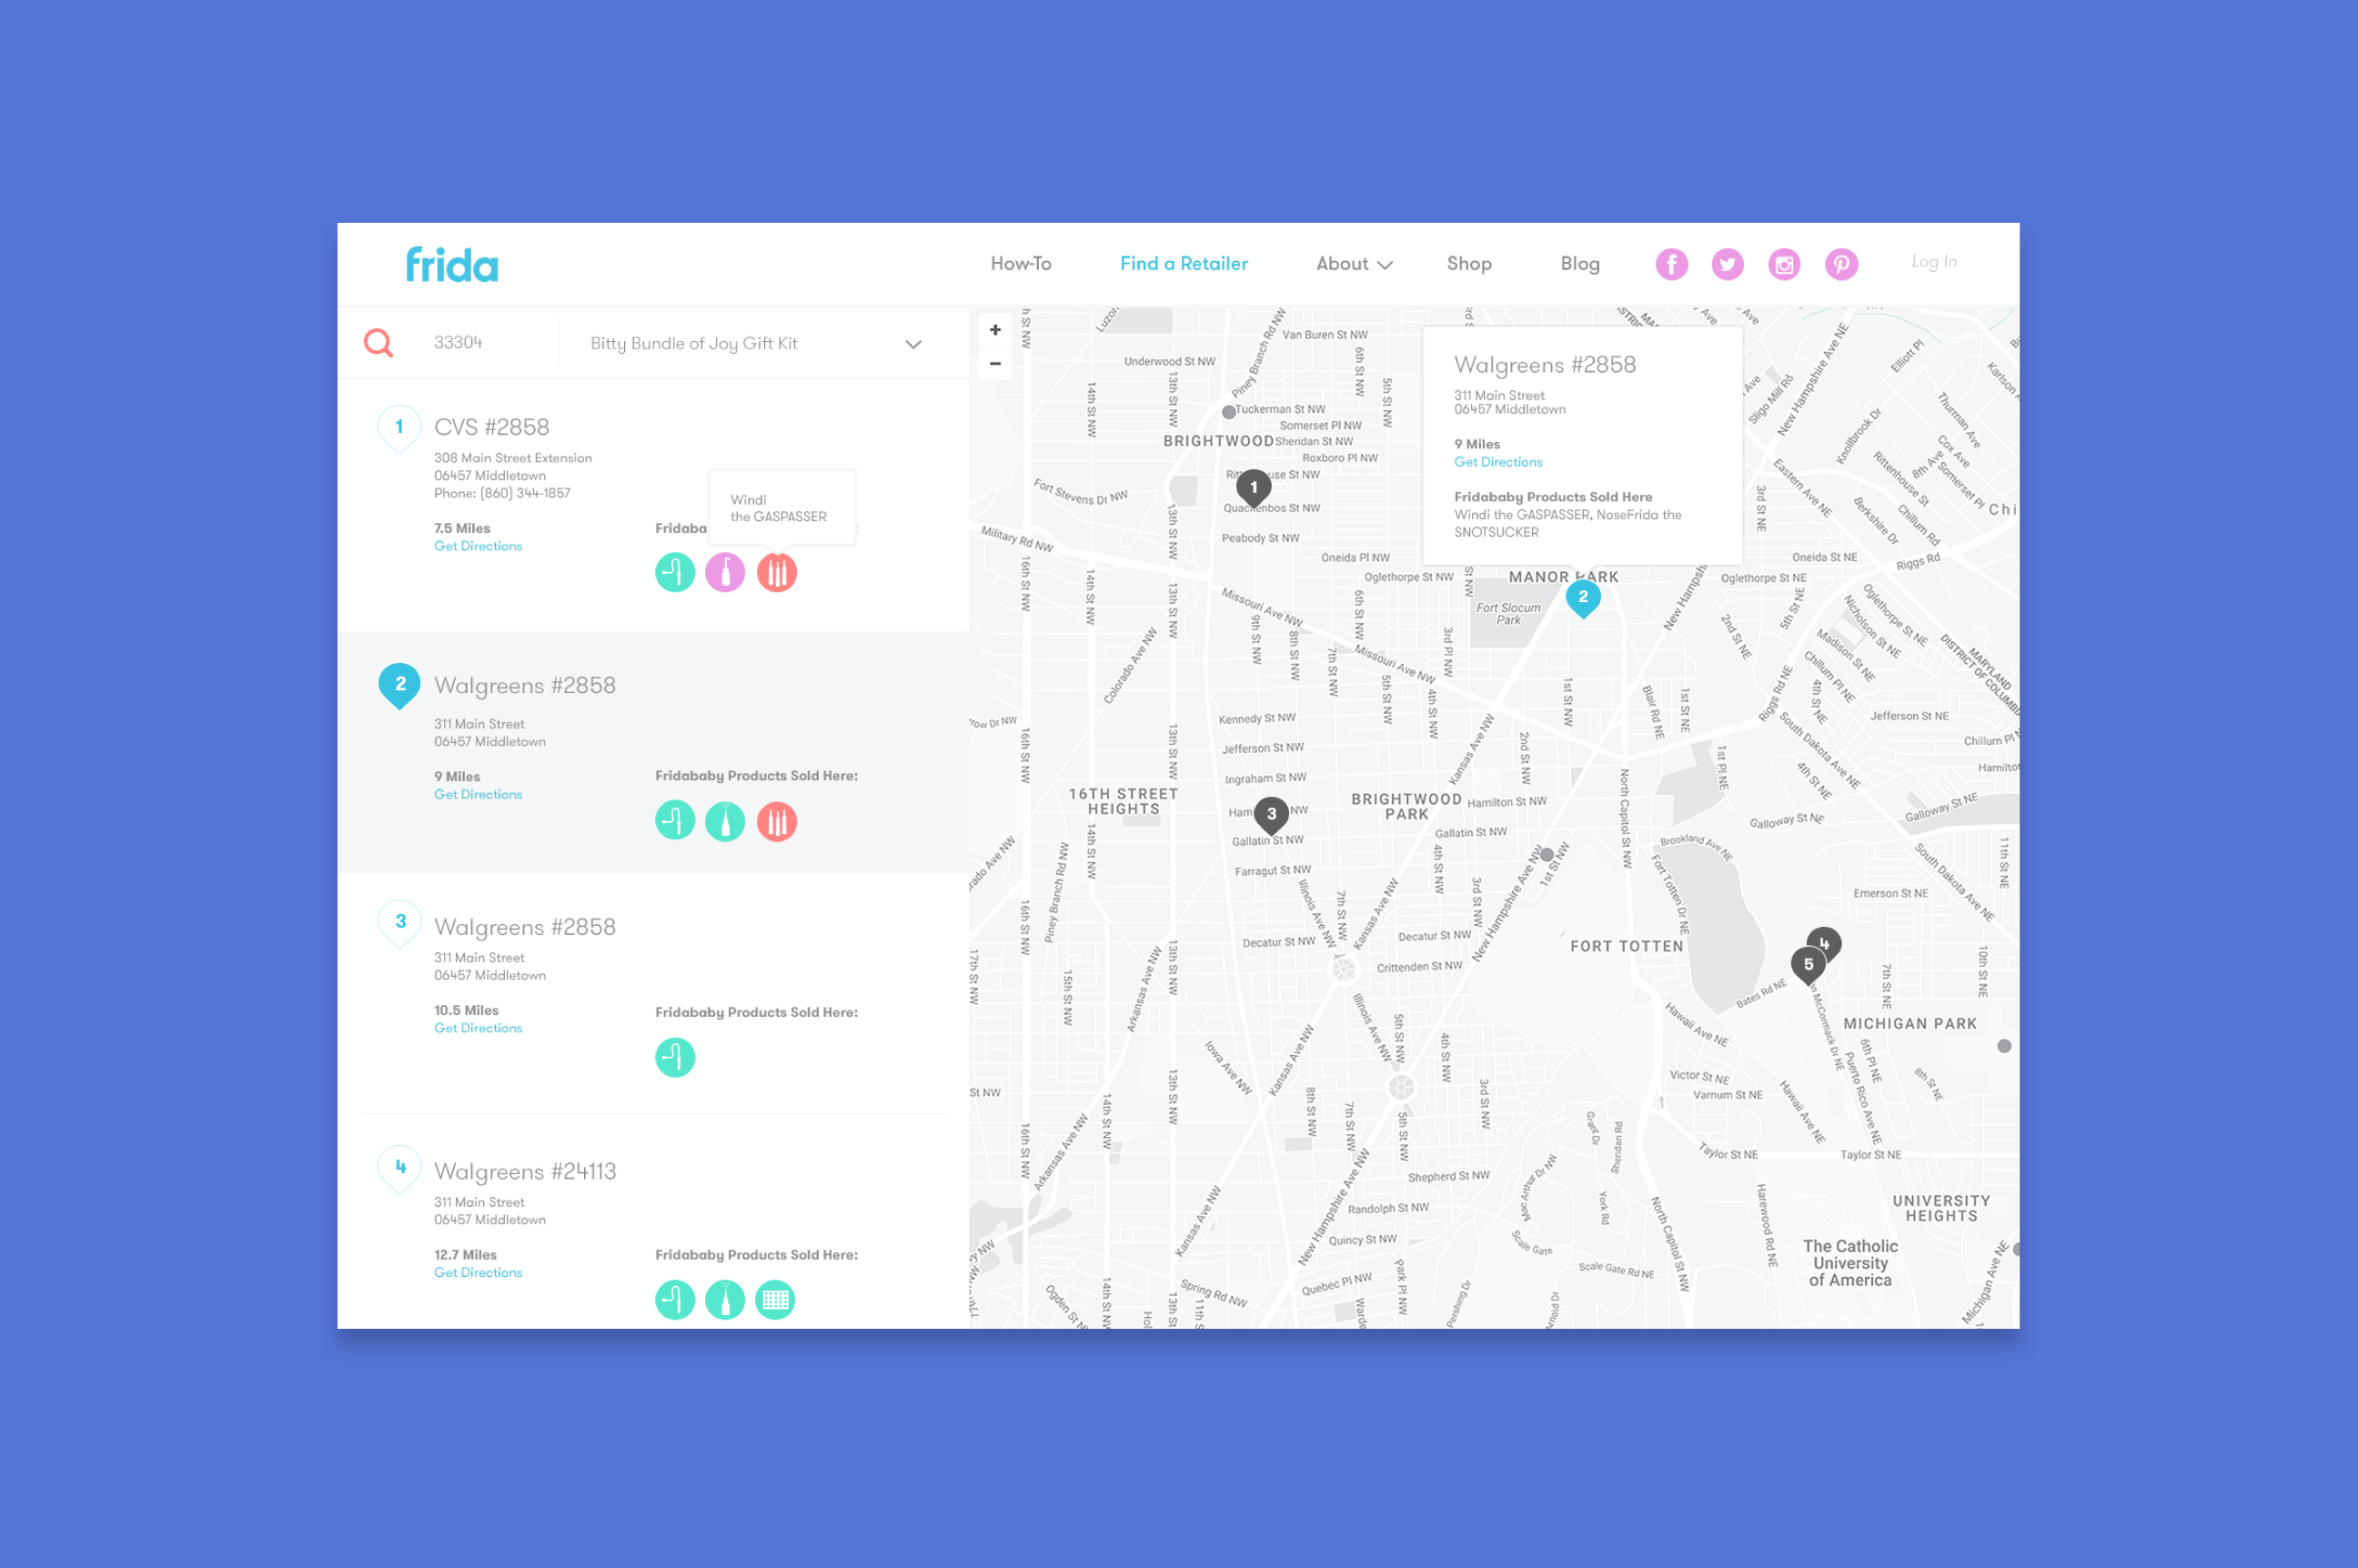 Map functionality to show where users can find Frida products